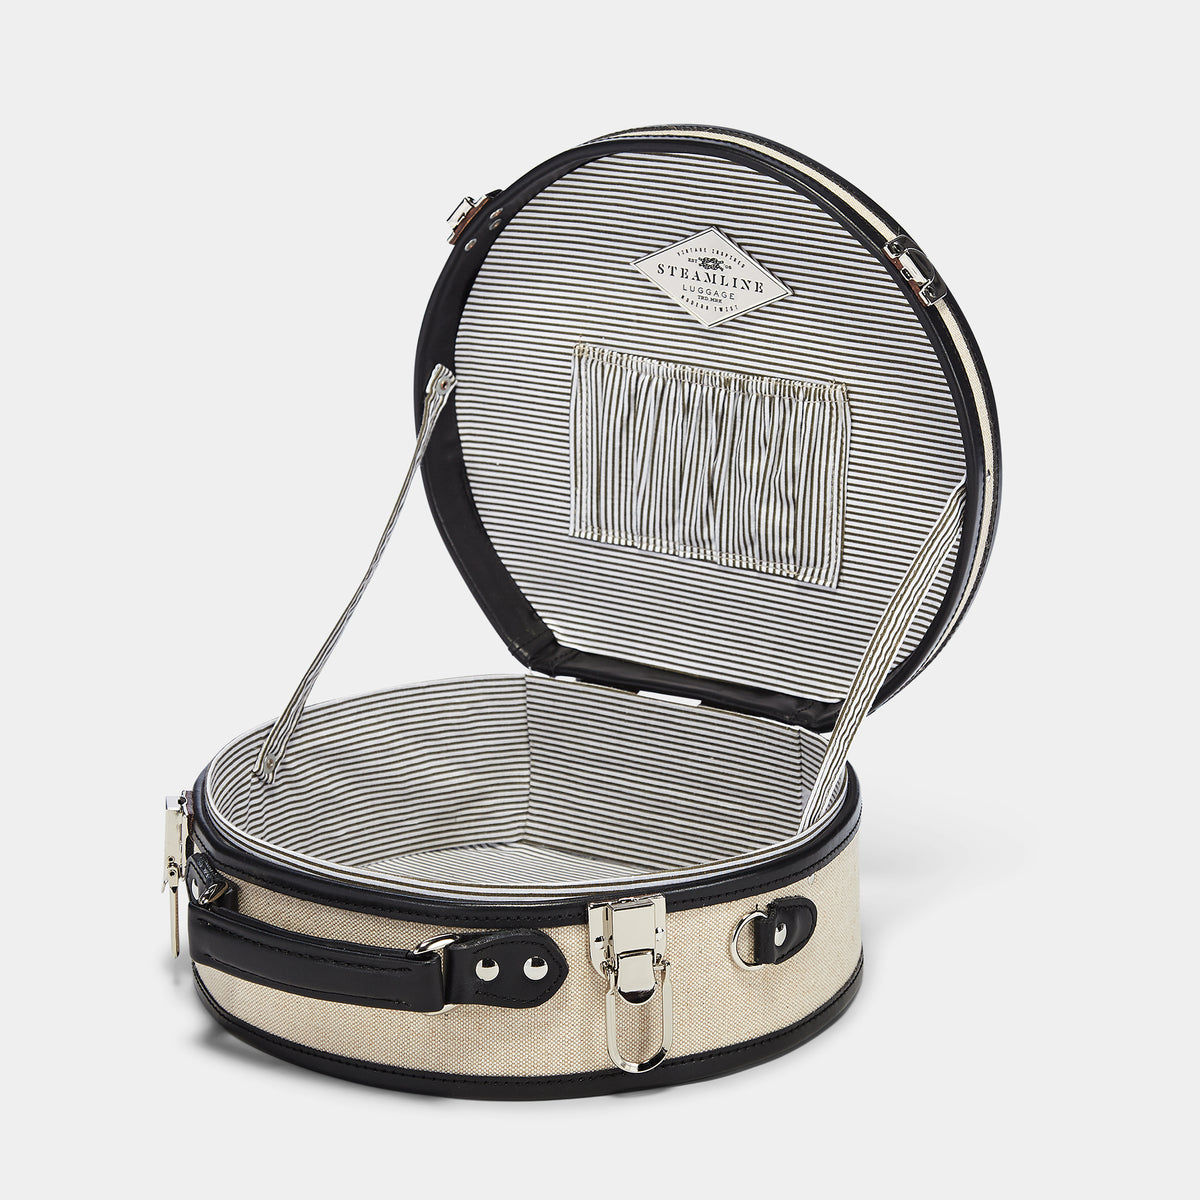 The Editor Hatbox Small in Black - Hat Box Luggage - Interior Front